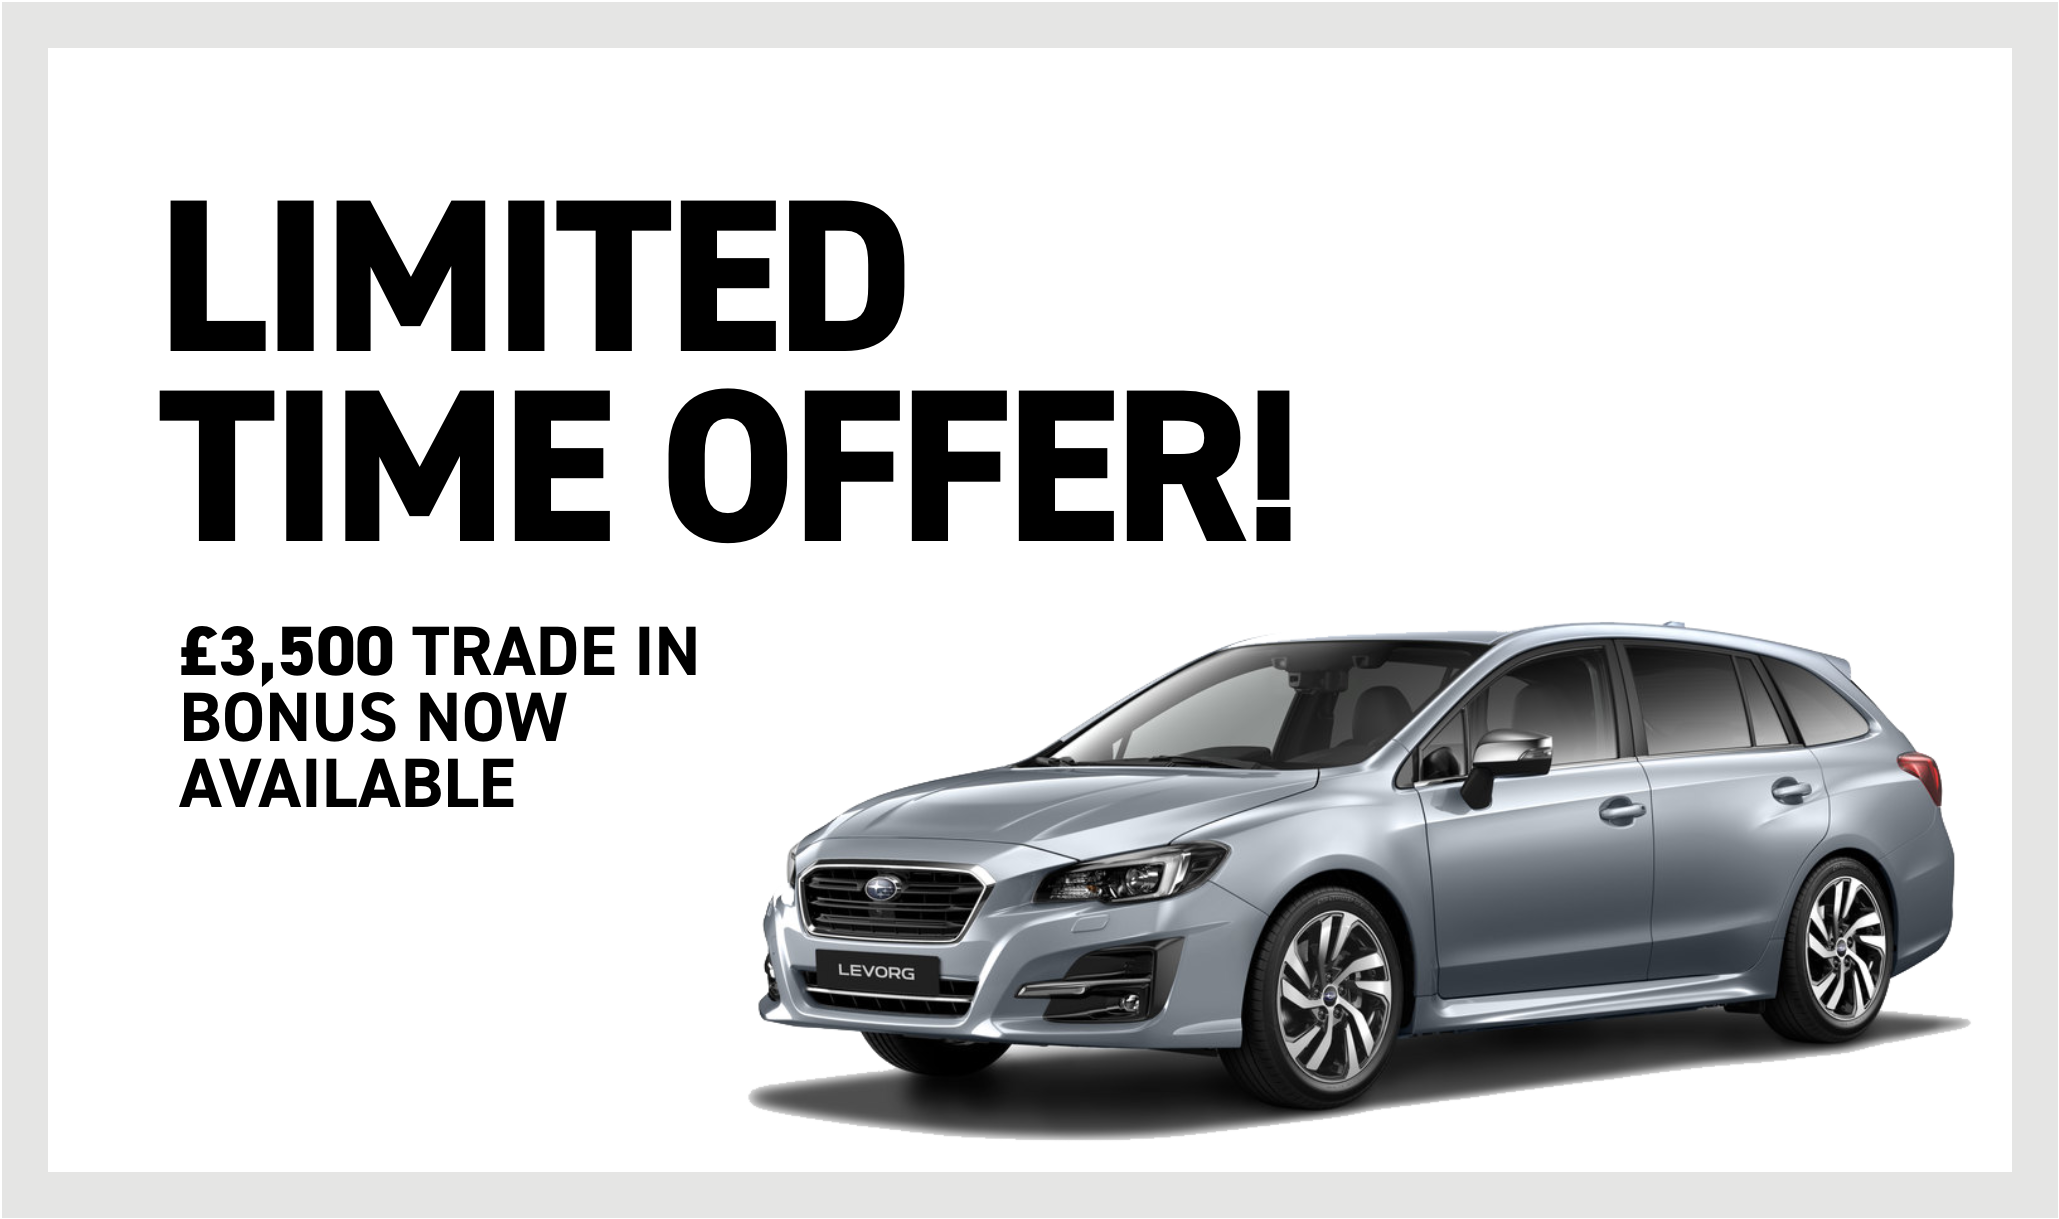 Levorg Limited Time Offer £2,000 Trade-in bonus now available